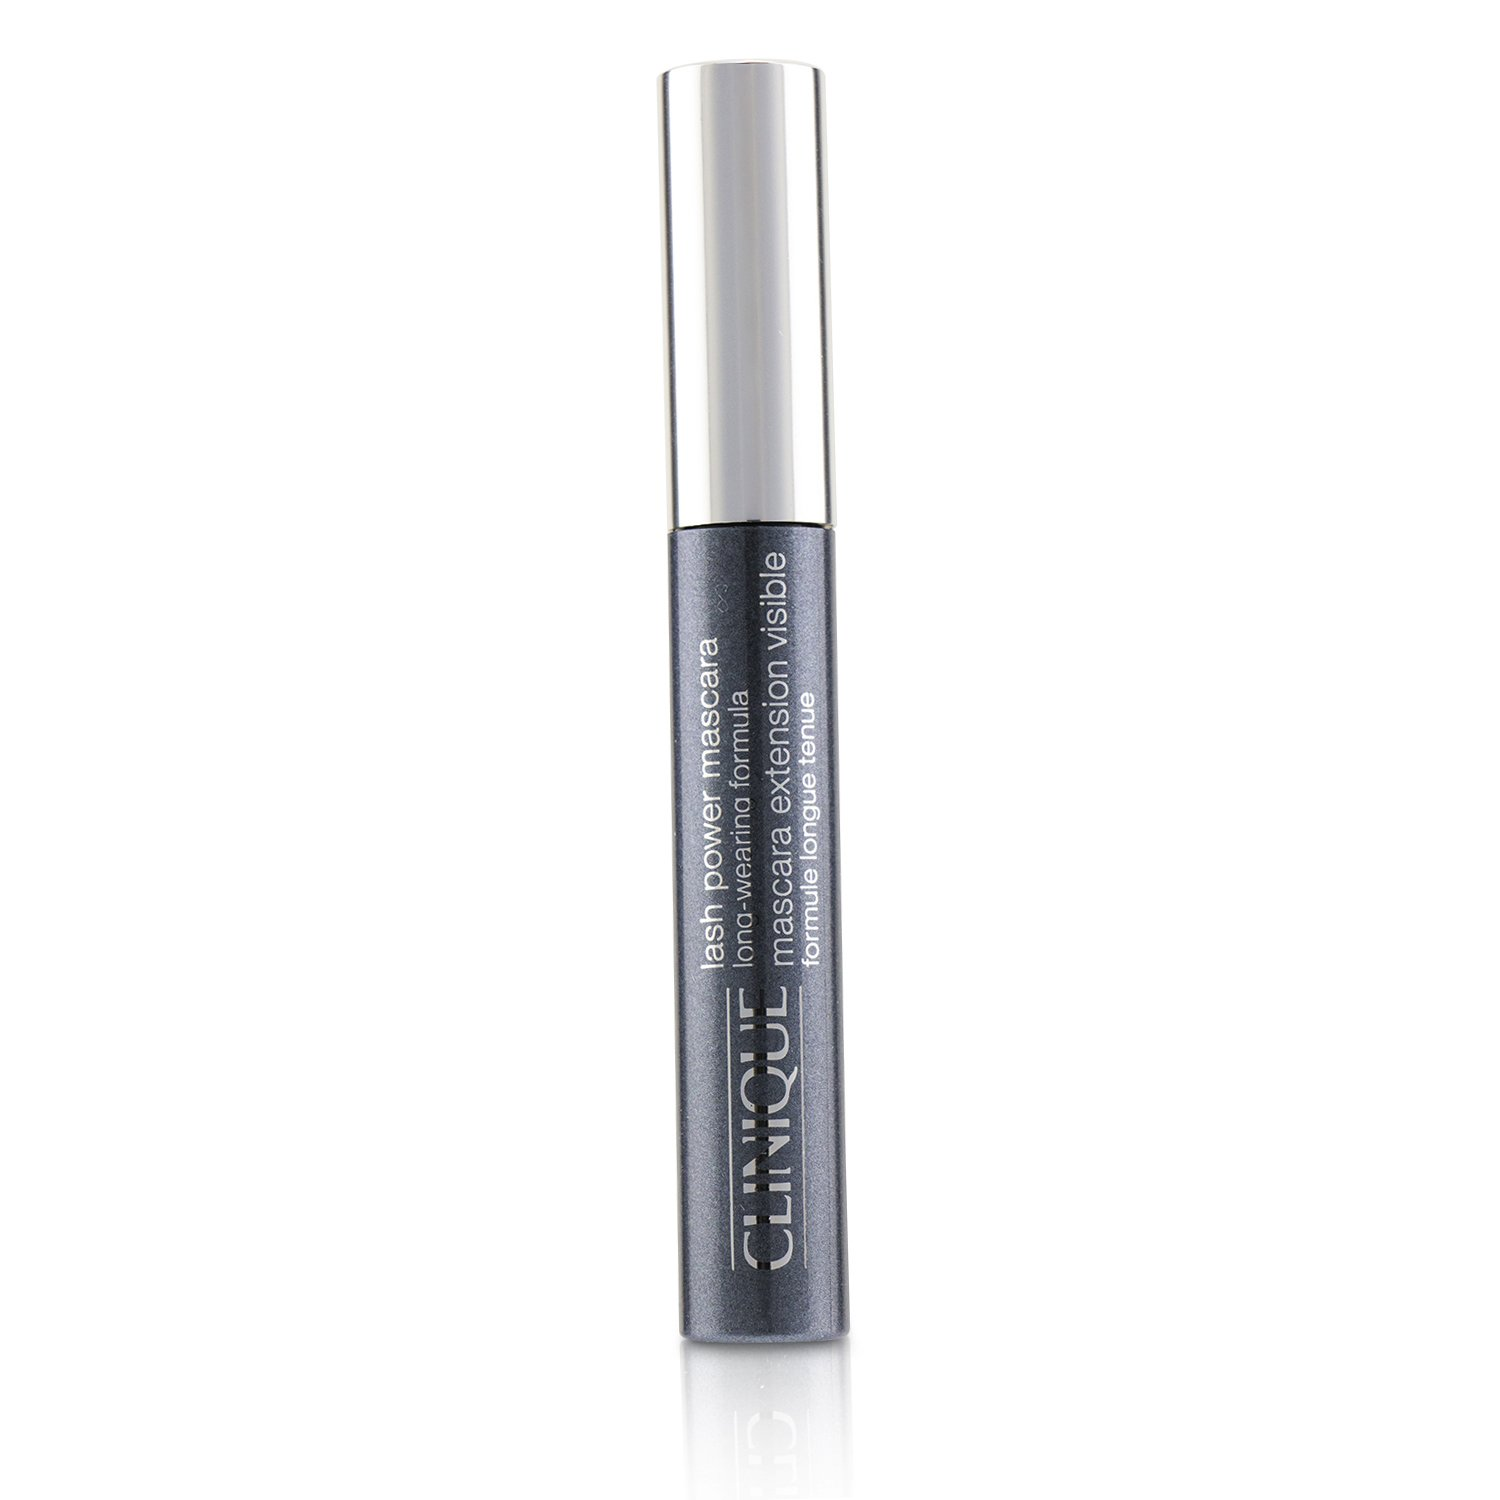 倩碧 Clinique - Lash Power Extension Visible Mascara 睫毛膏